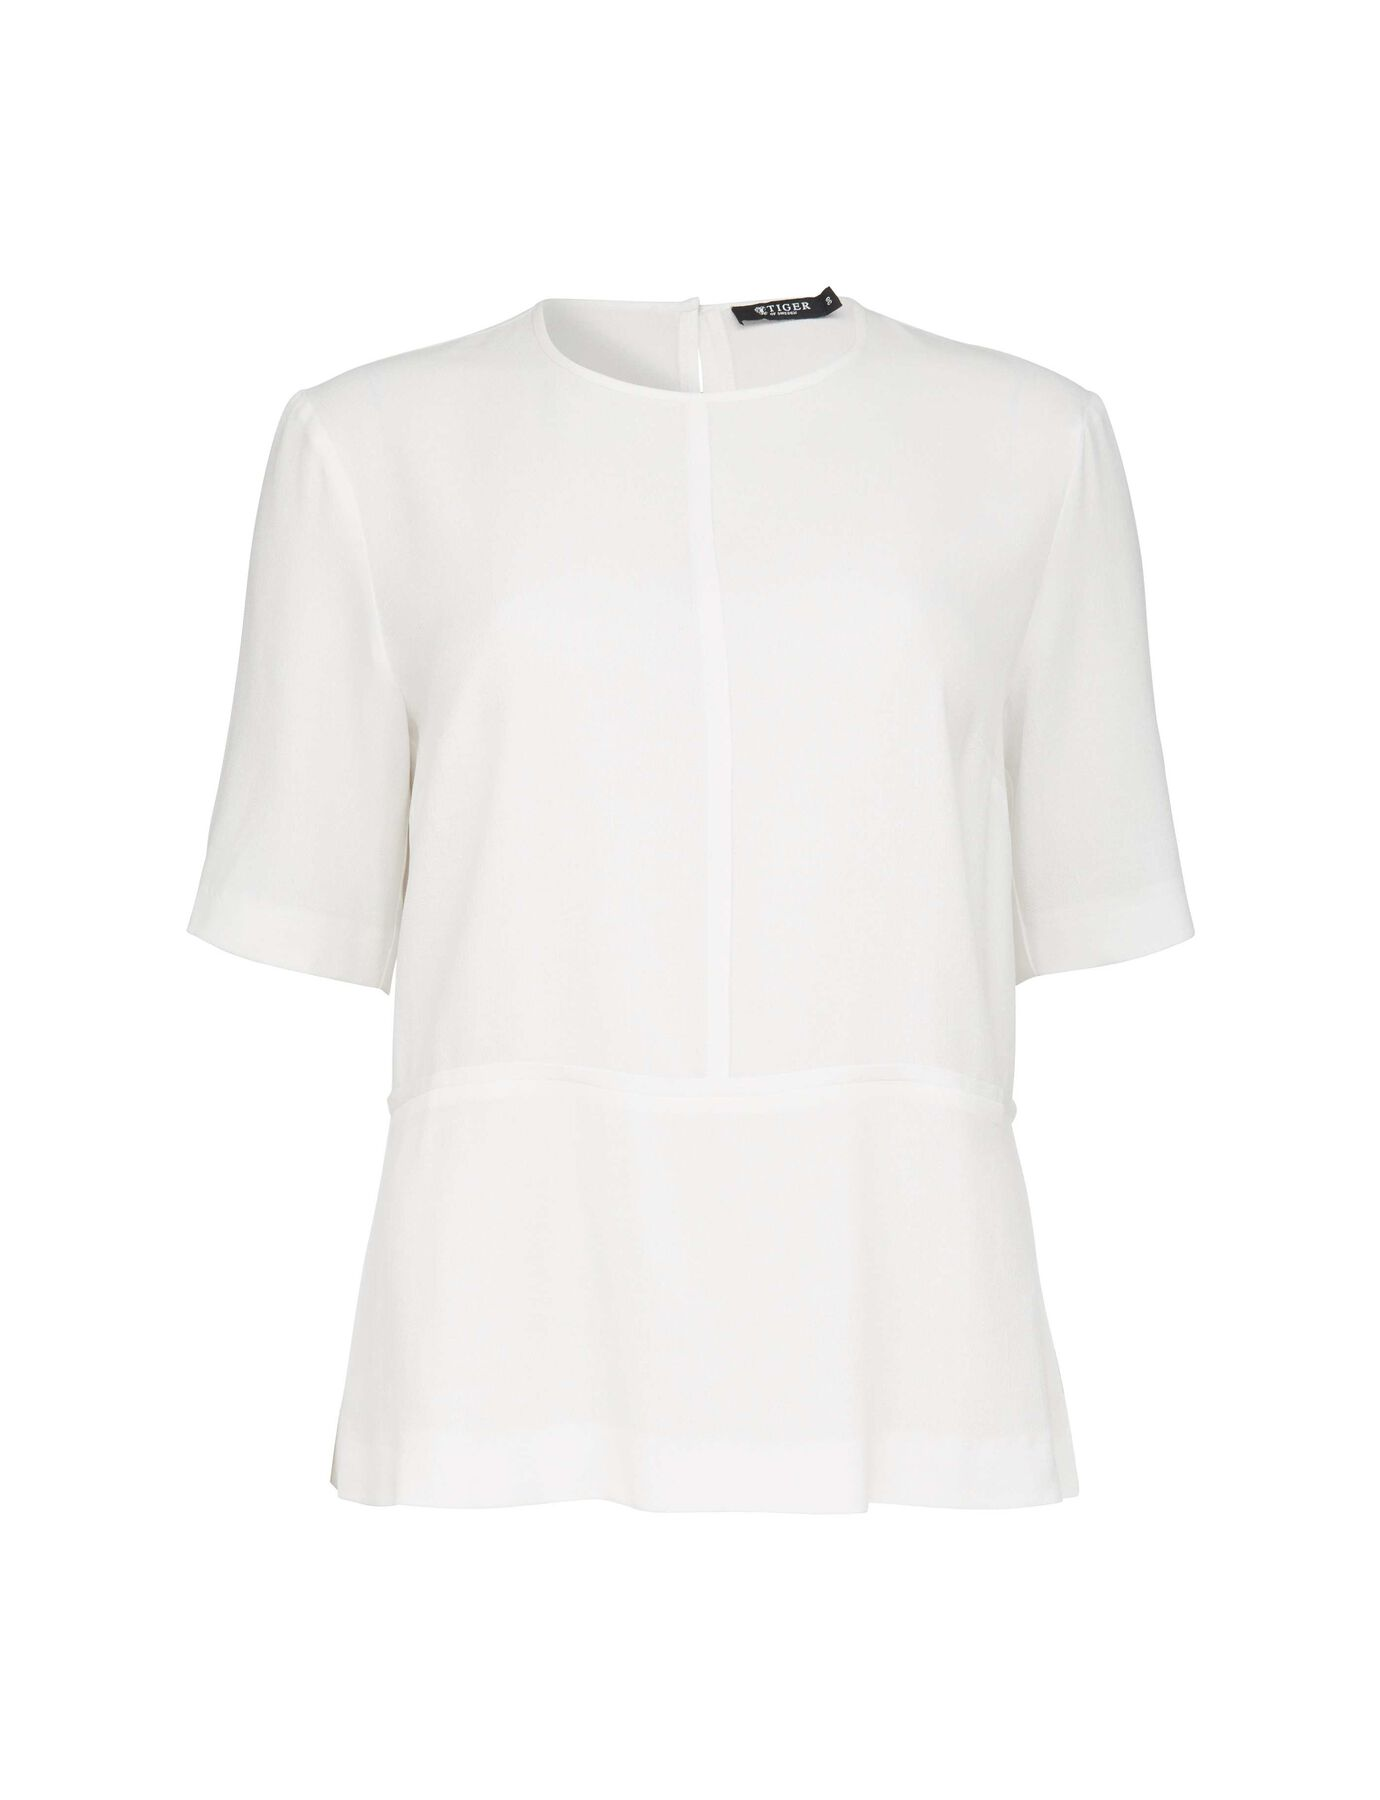 SETA TOP in Star White from Tiger of Sweden